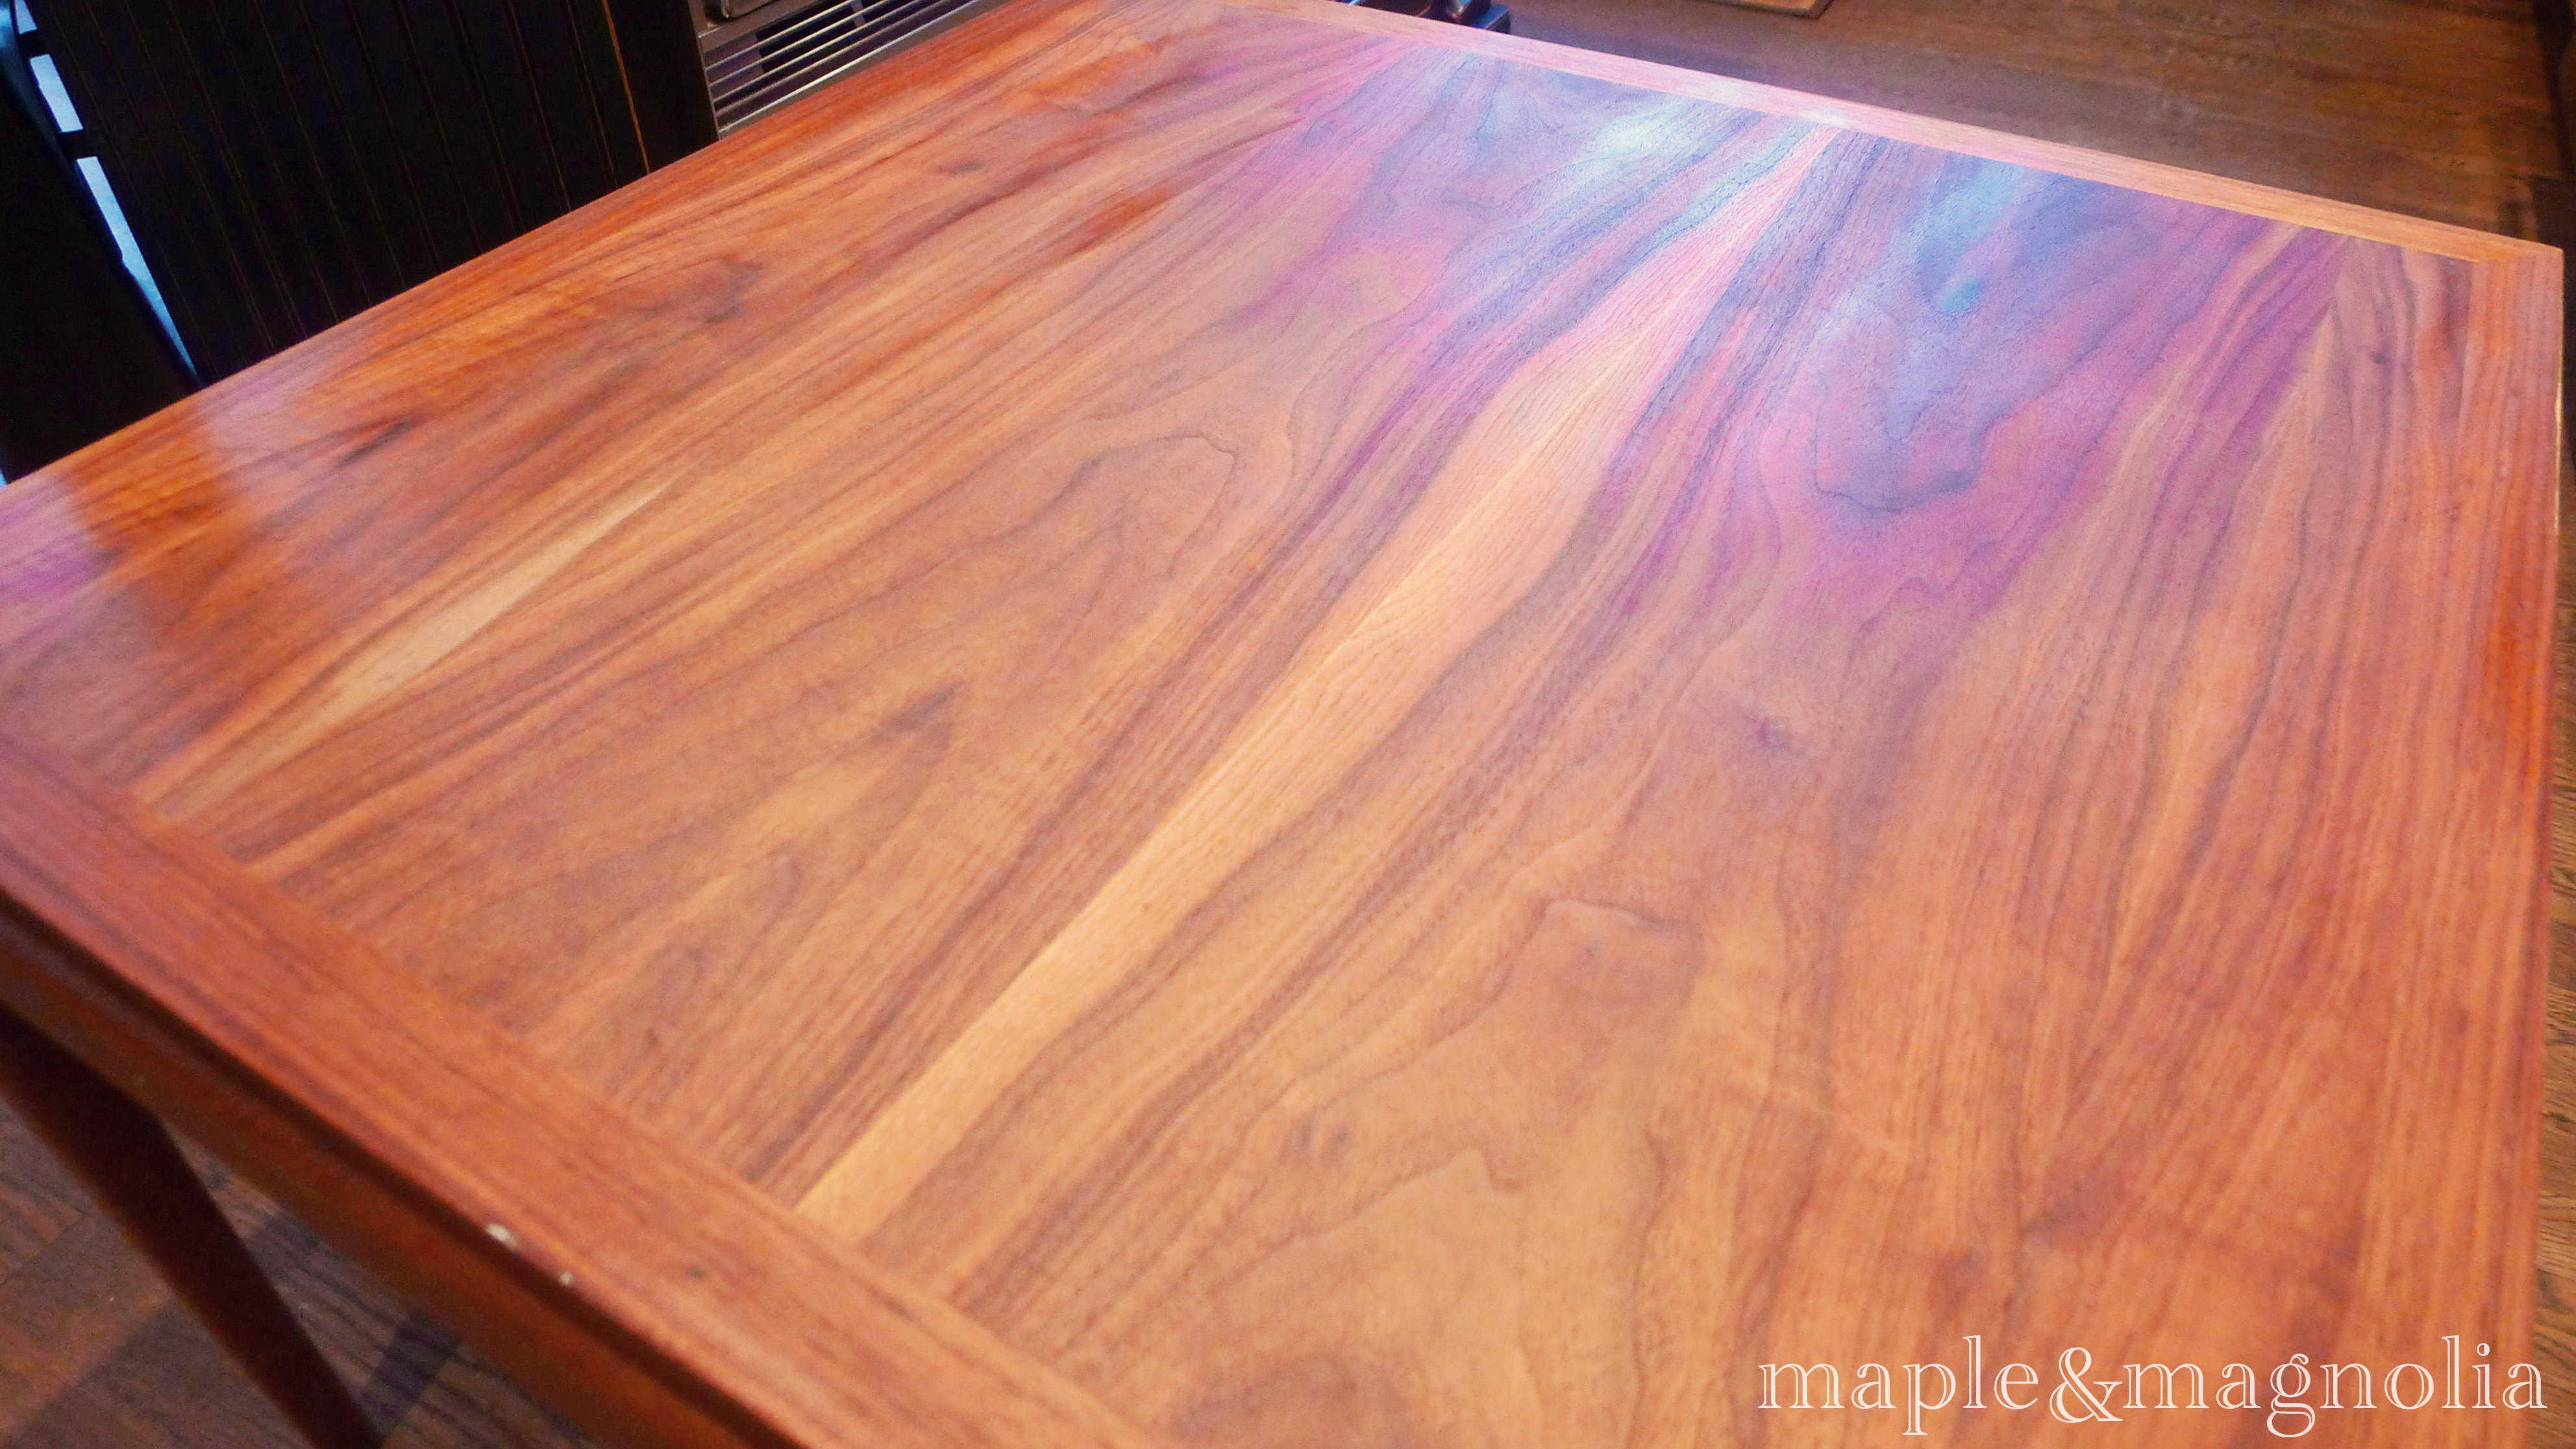 Next Comes The Stain Dark Walnut Of Course Apply With A Staining Pad For Beautifully Even Coverage